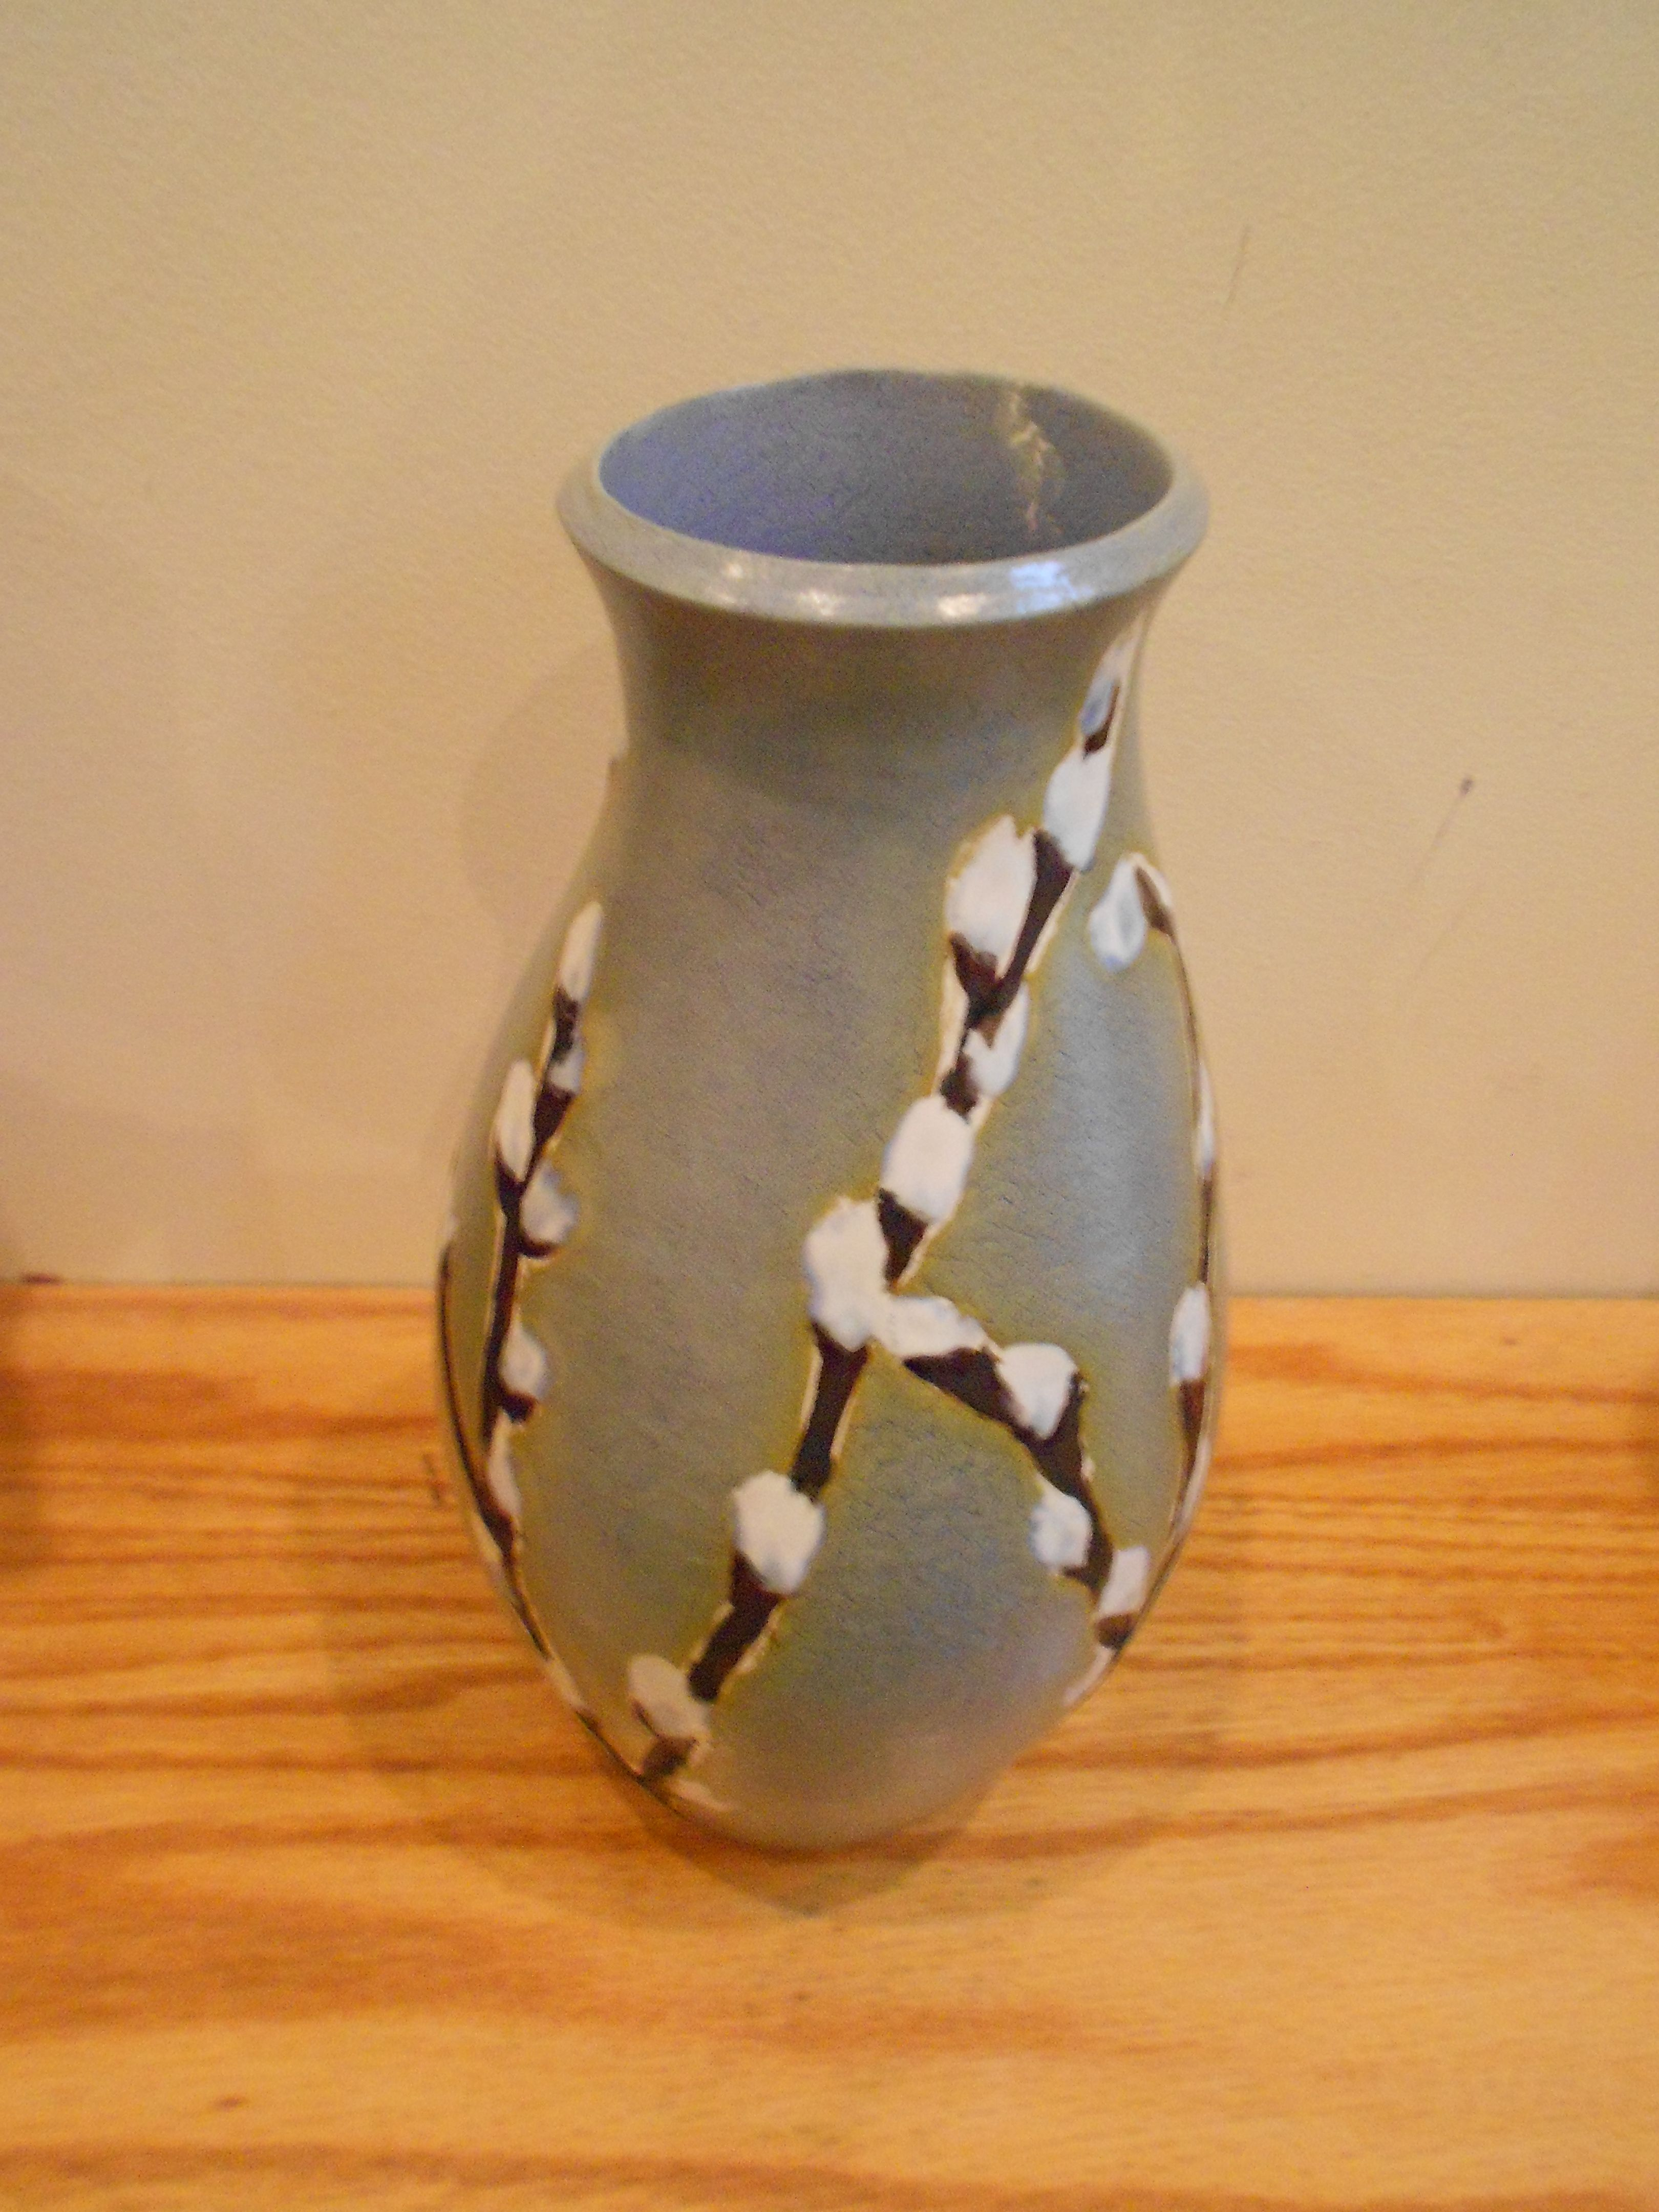 Laura Wowk Pottery wheel thrown white stoneware, with underglaze, wax resist, and multiple firings to cone 6